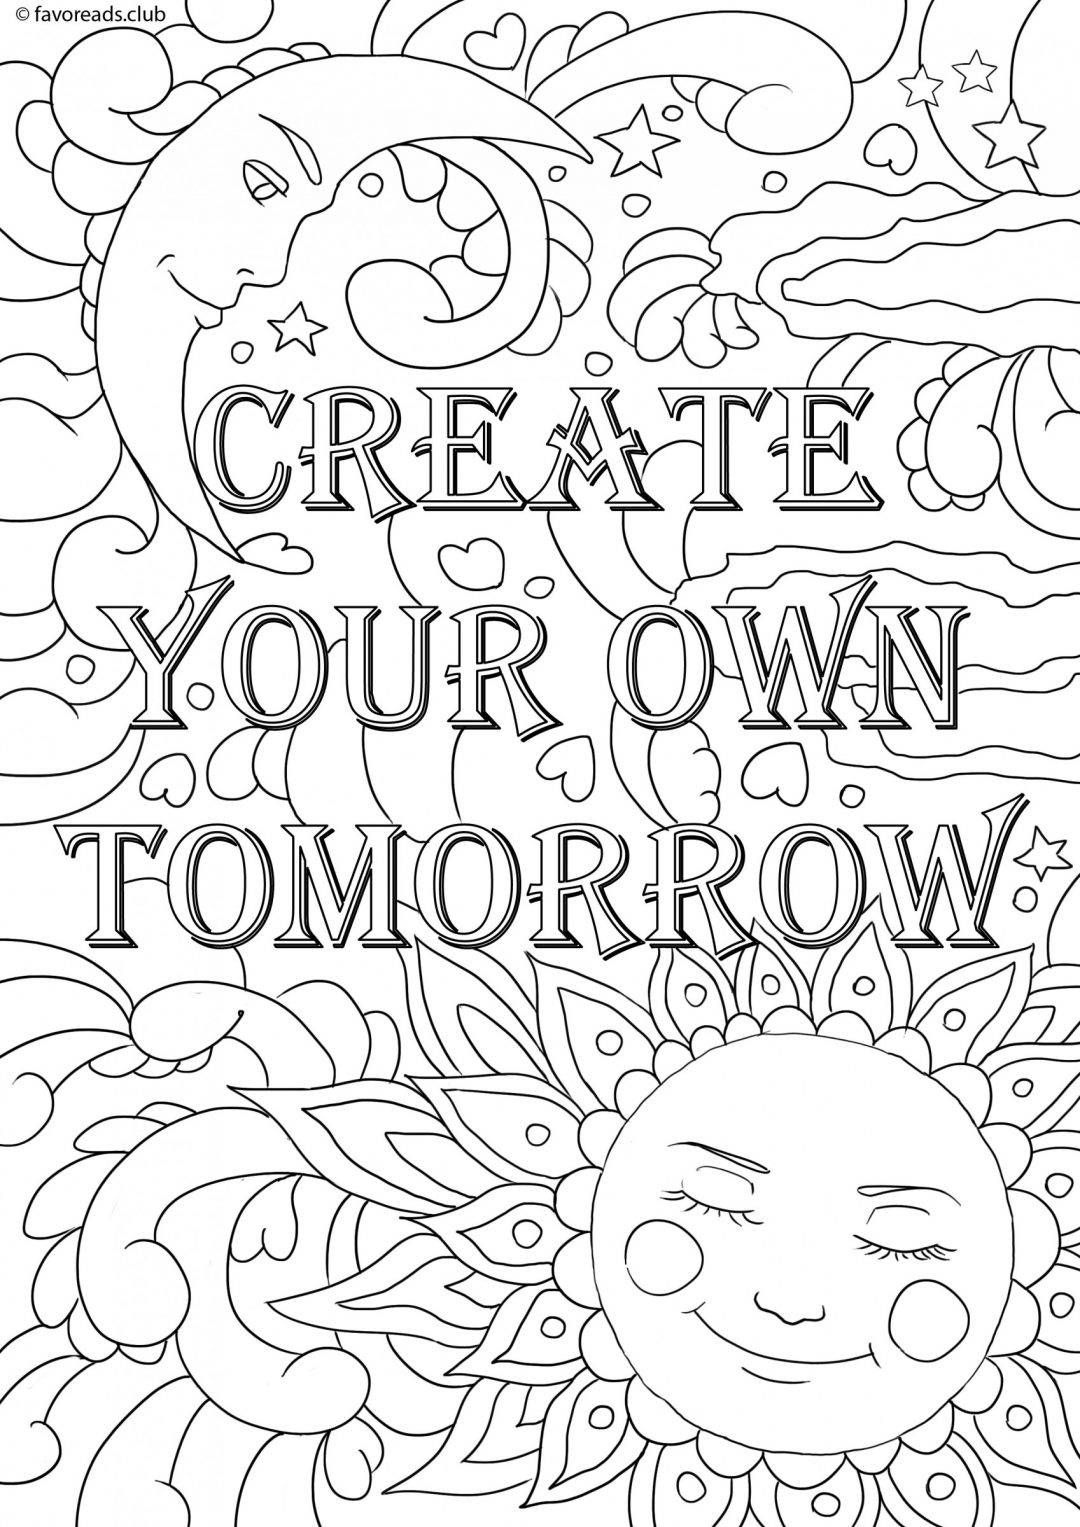 The Best Free Adult Coloring Book Pages | Printable adult ...